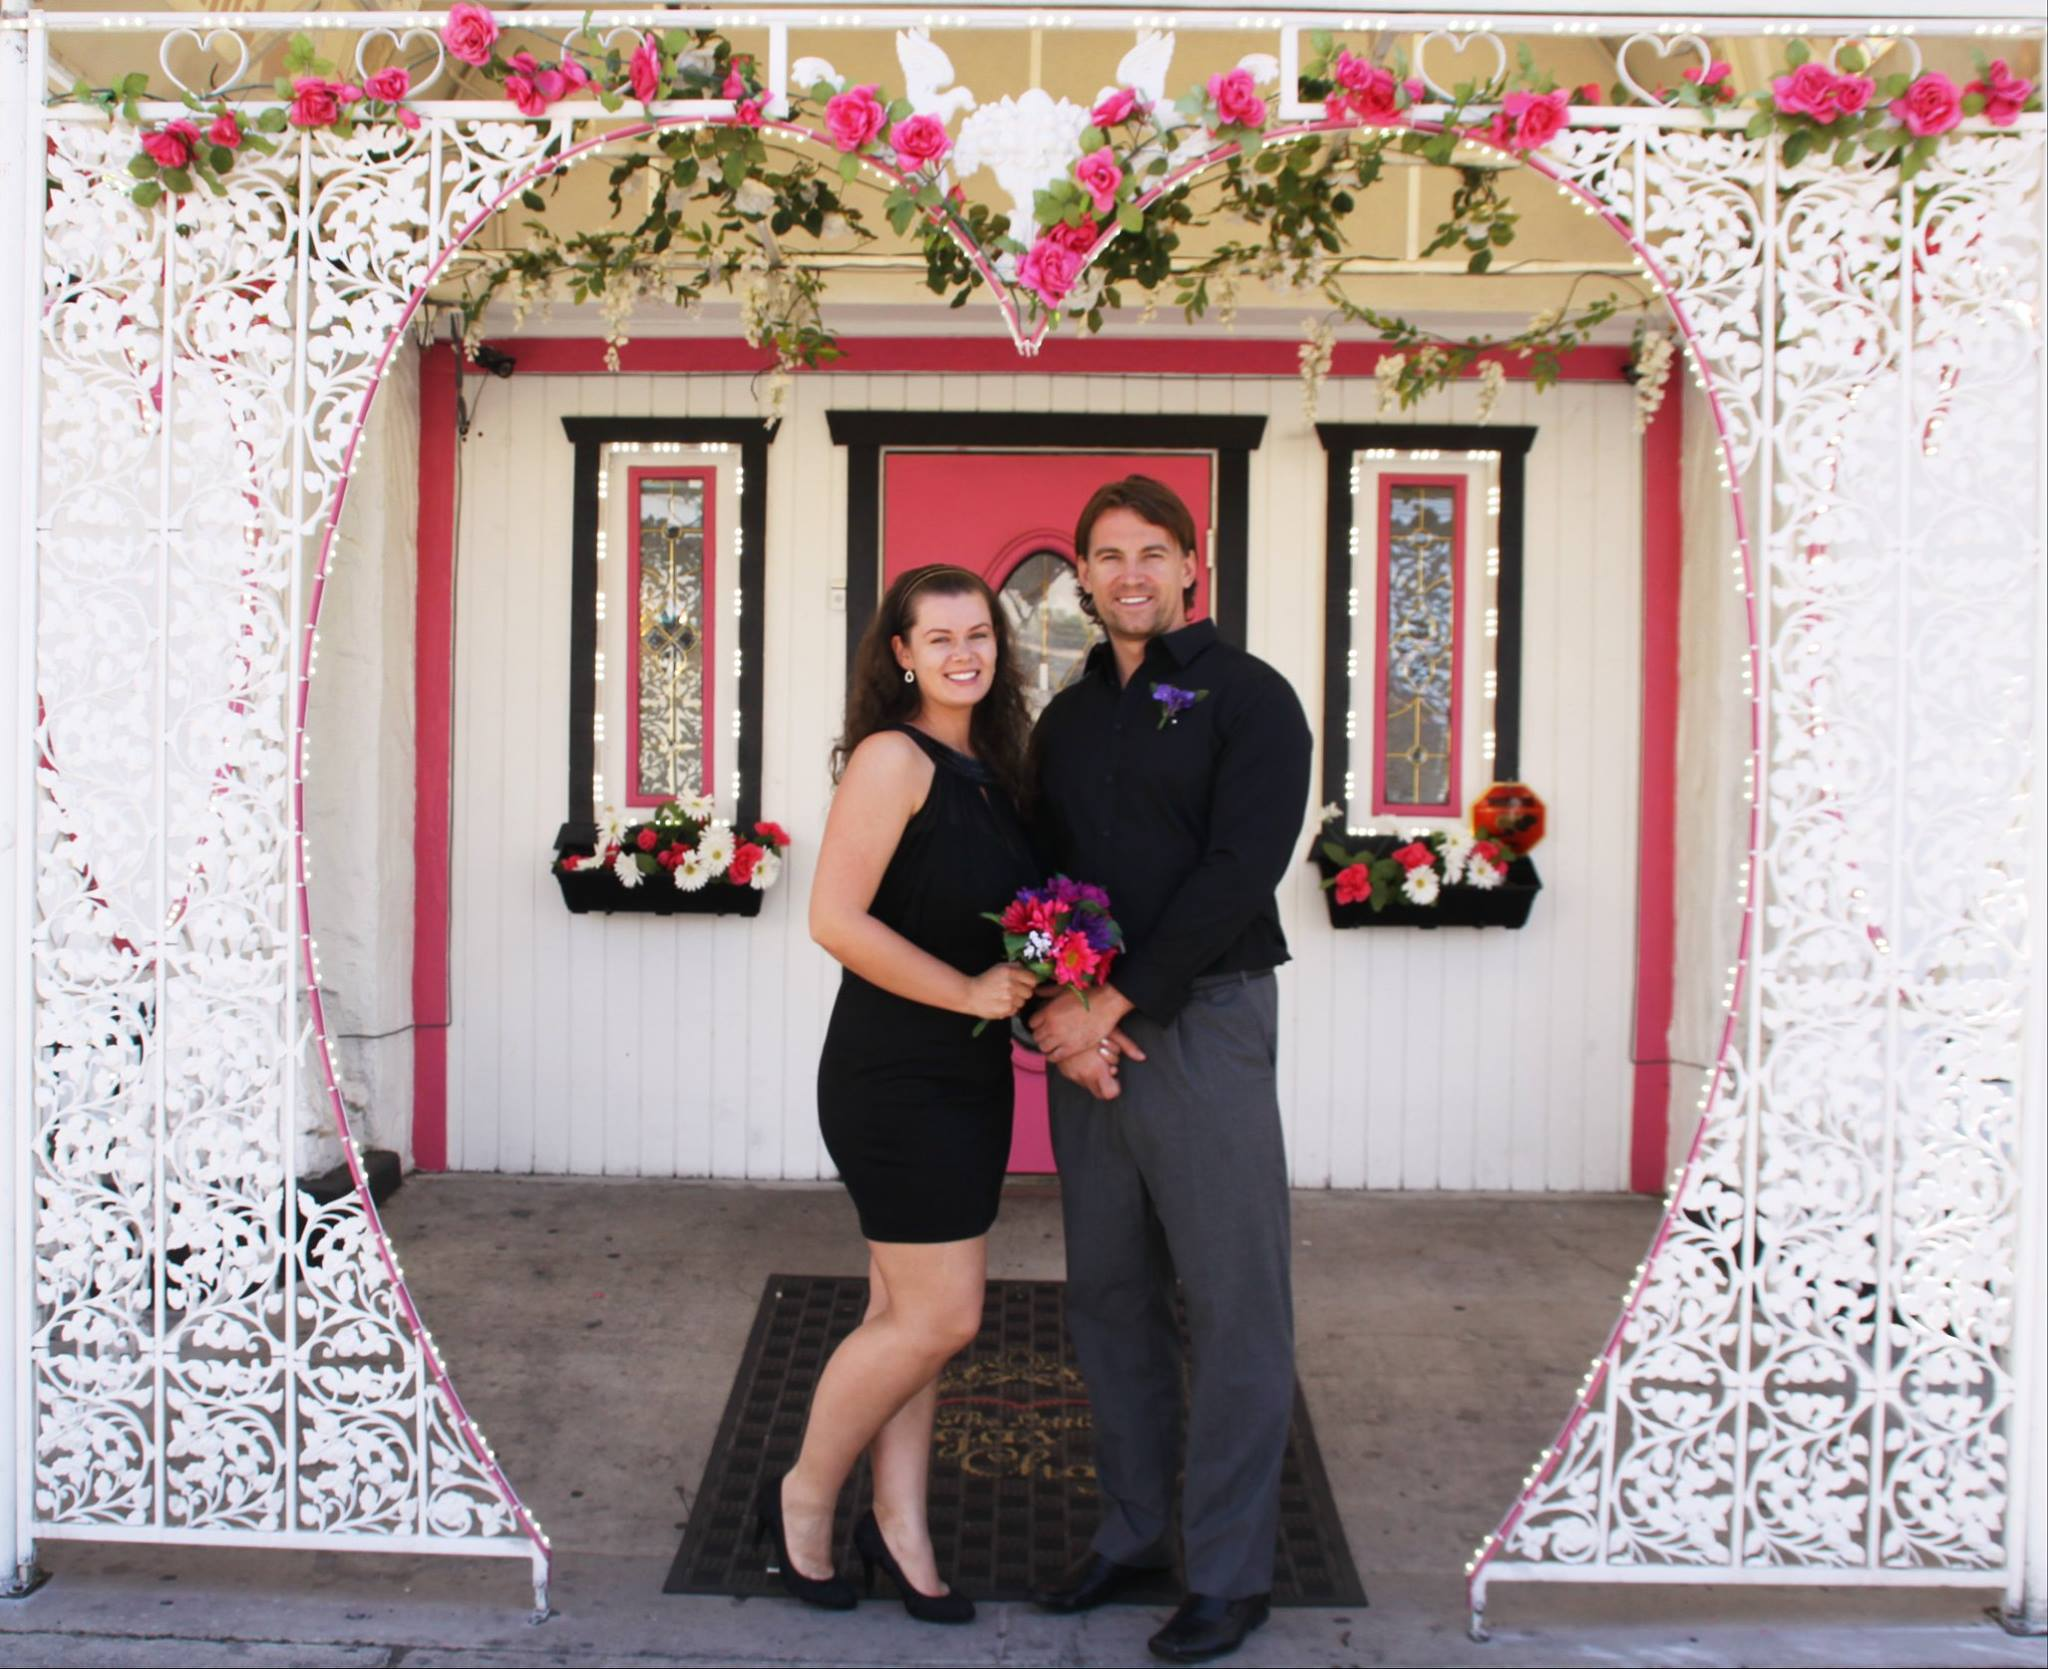 The Top Las Vegas Strip Wedding Chapel